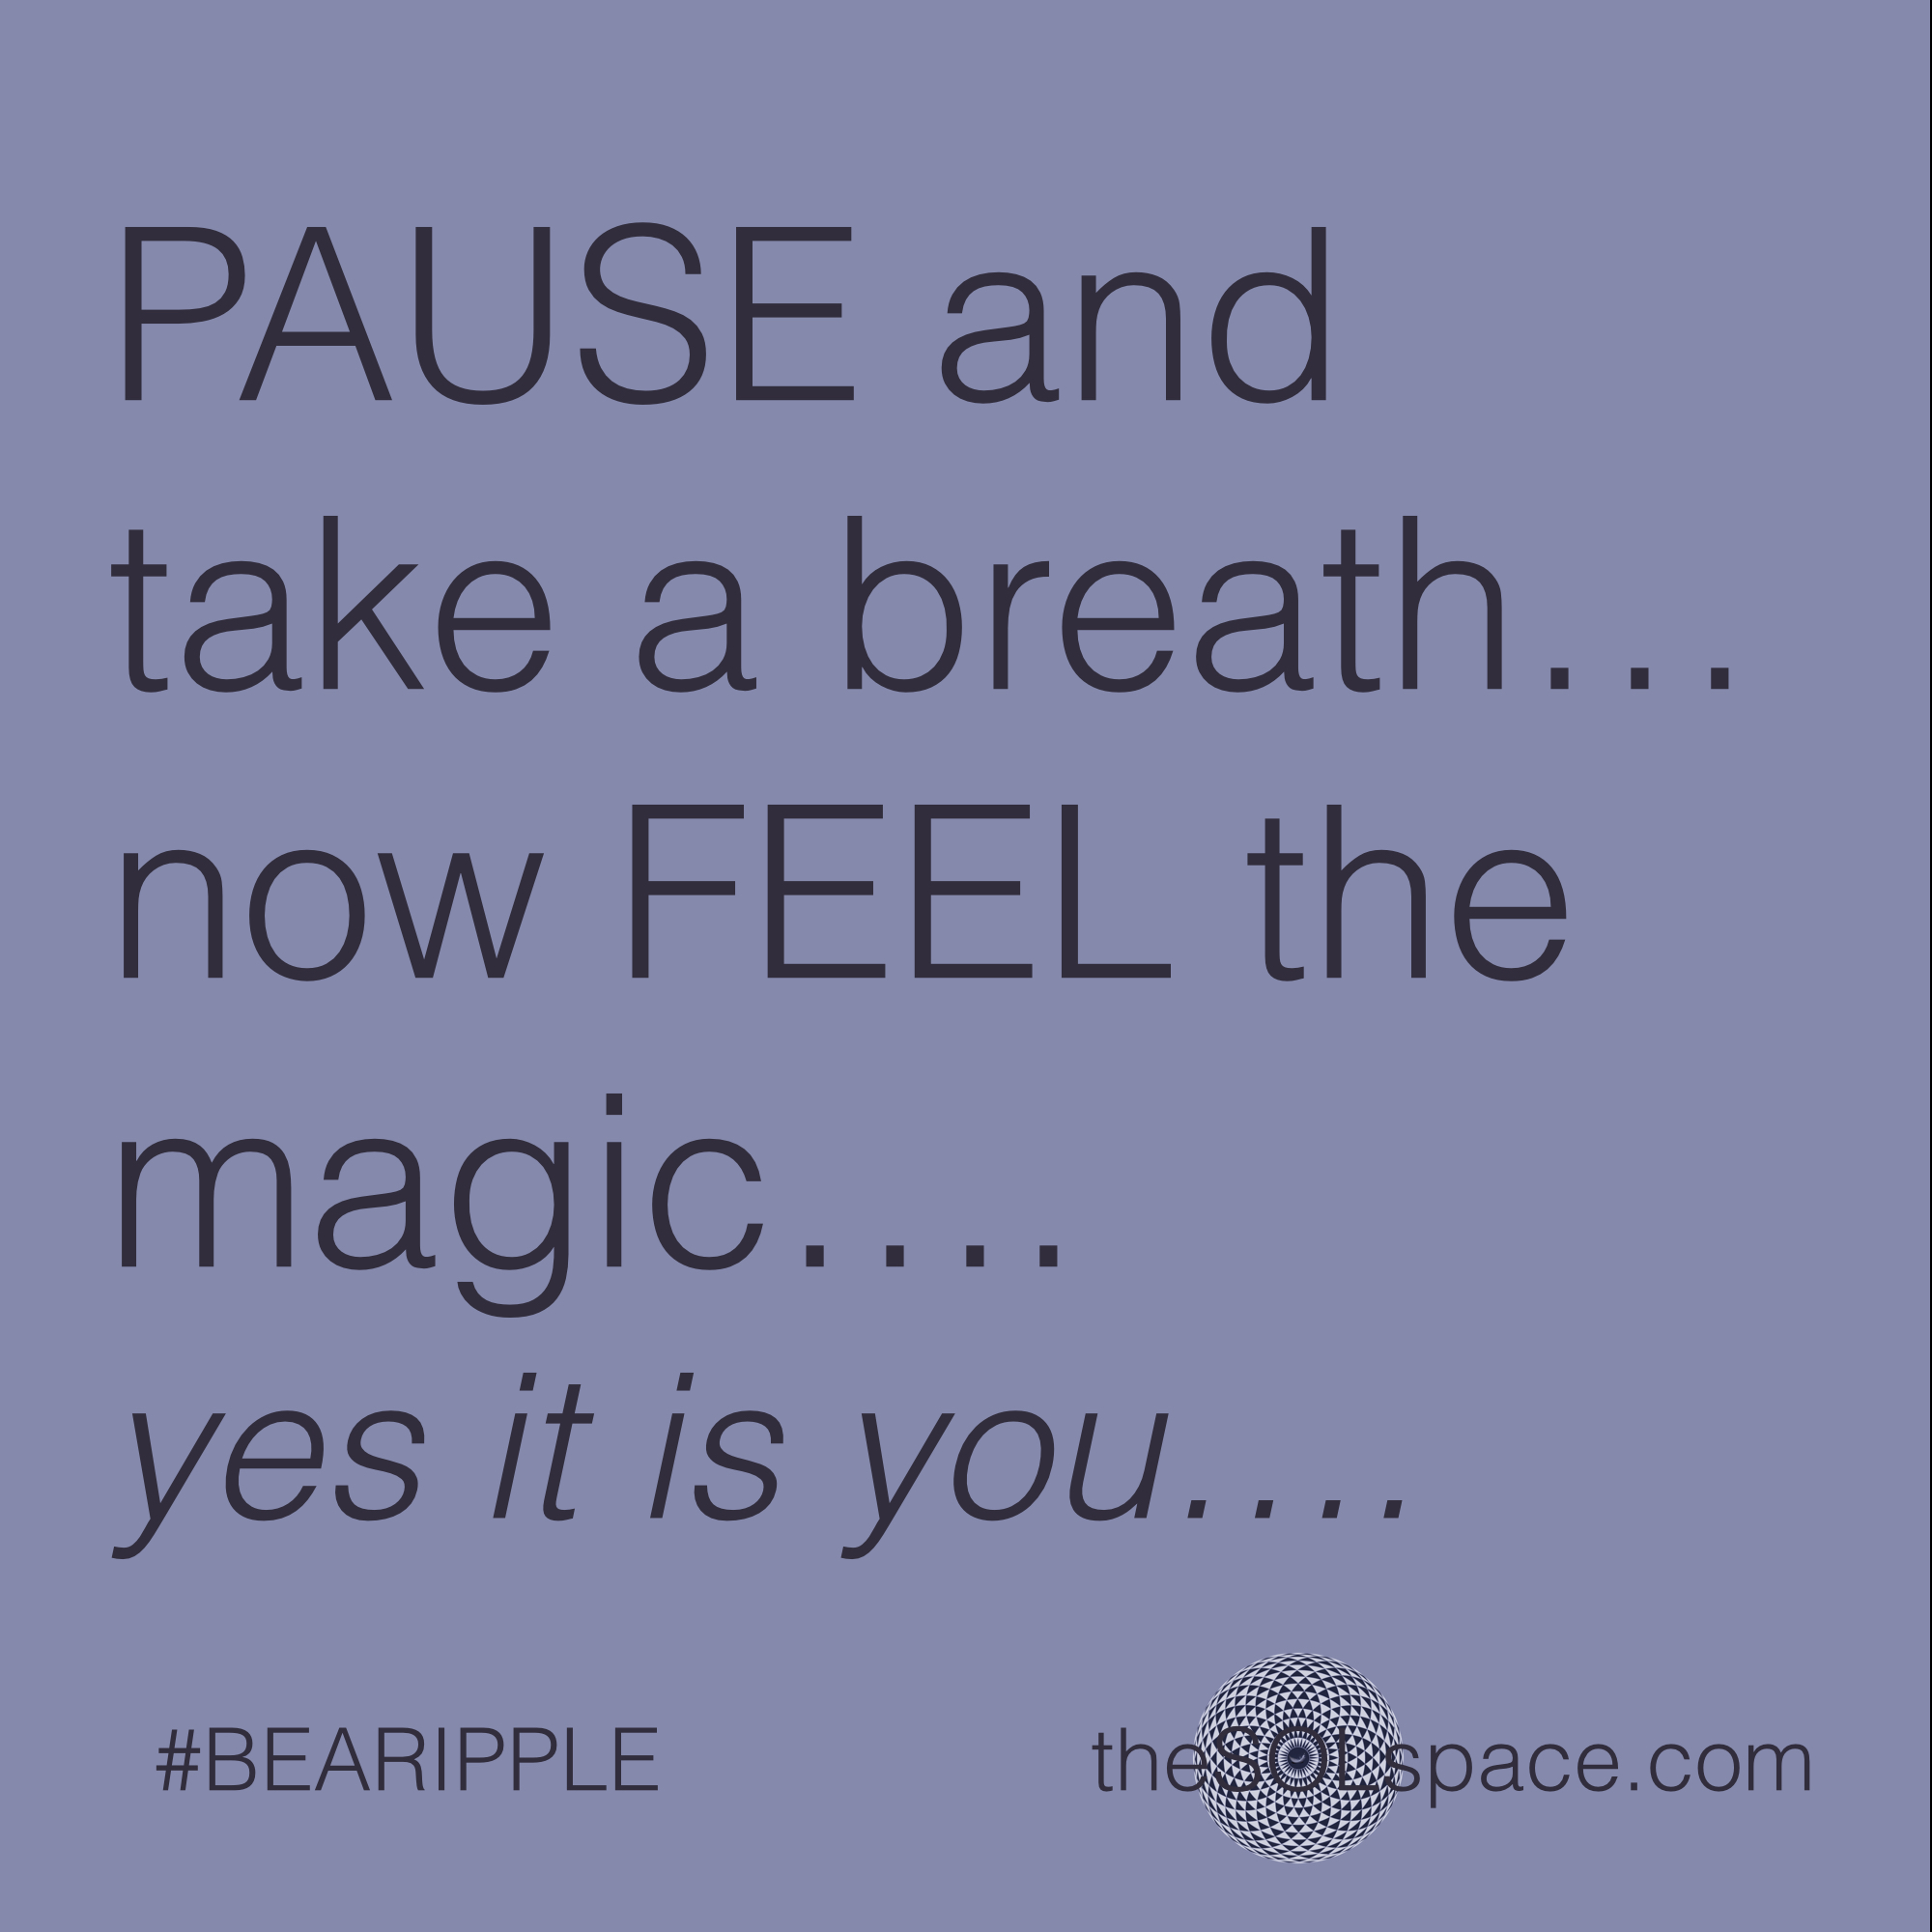 #BeARipple..Pause and take a breath now Feel the magic..yes it is you @theSOLspace